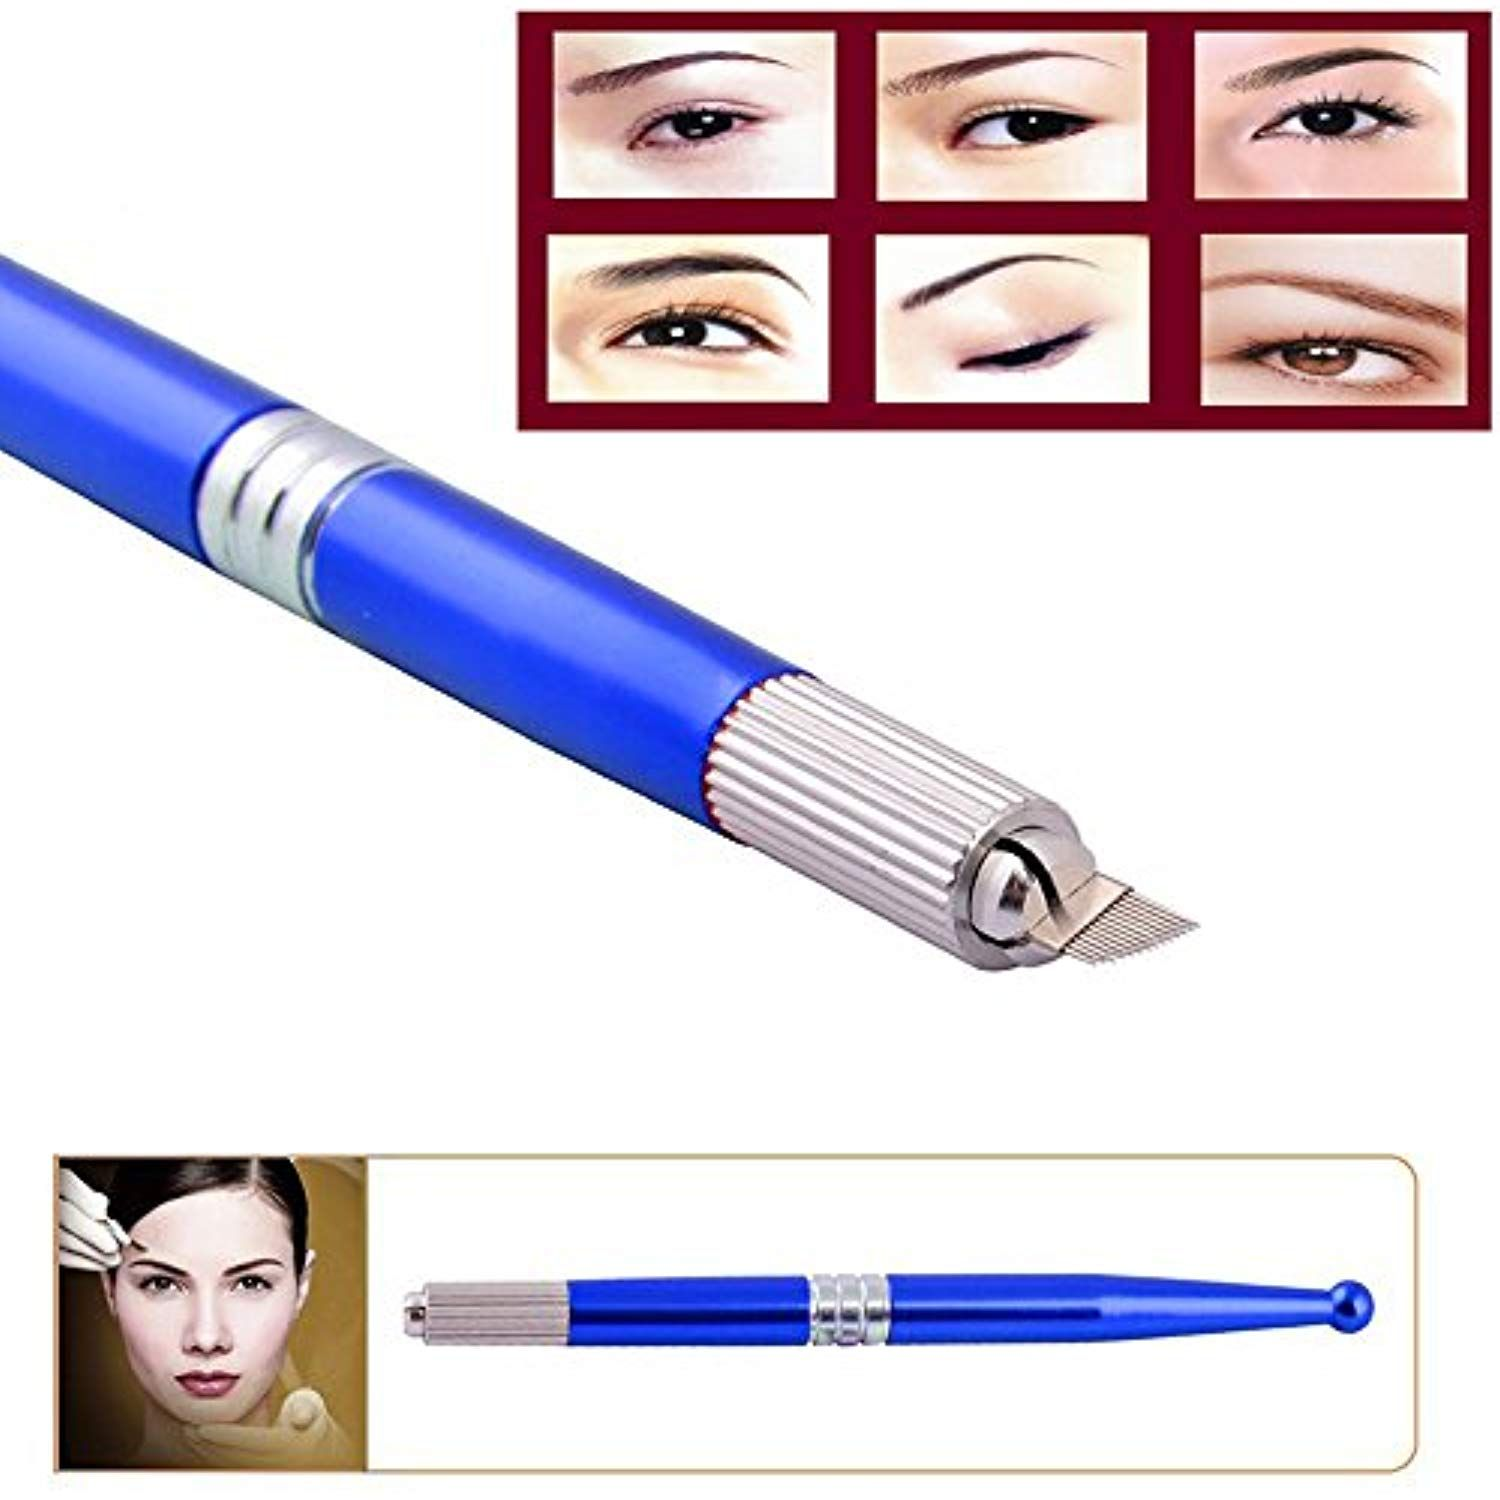 Disposable Eyebrow Microblading Pen Set CINRA Eyebrow